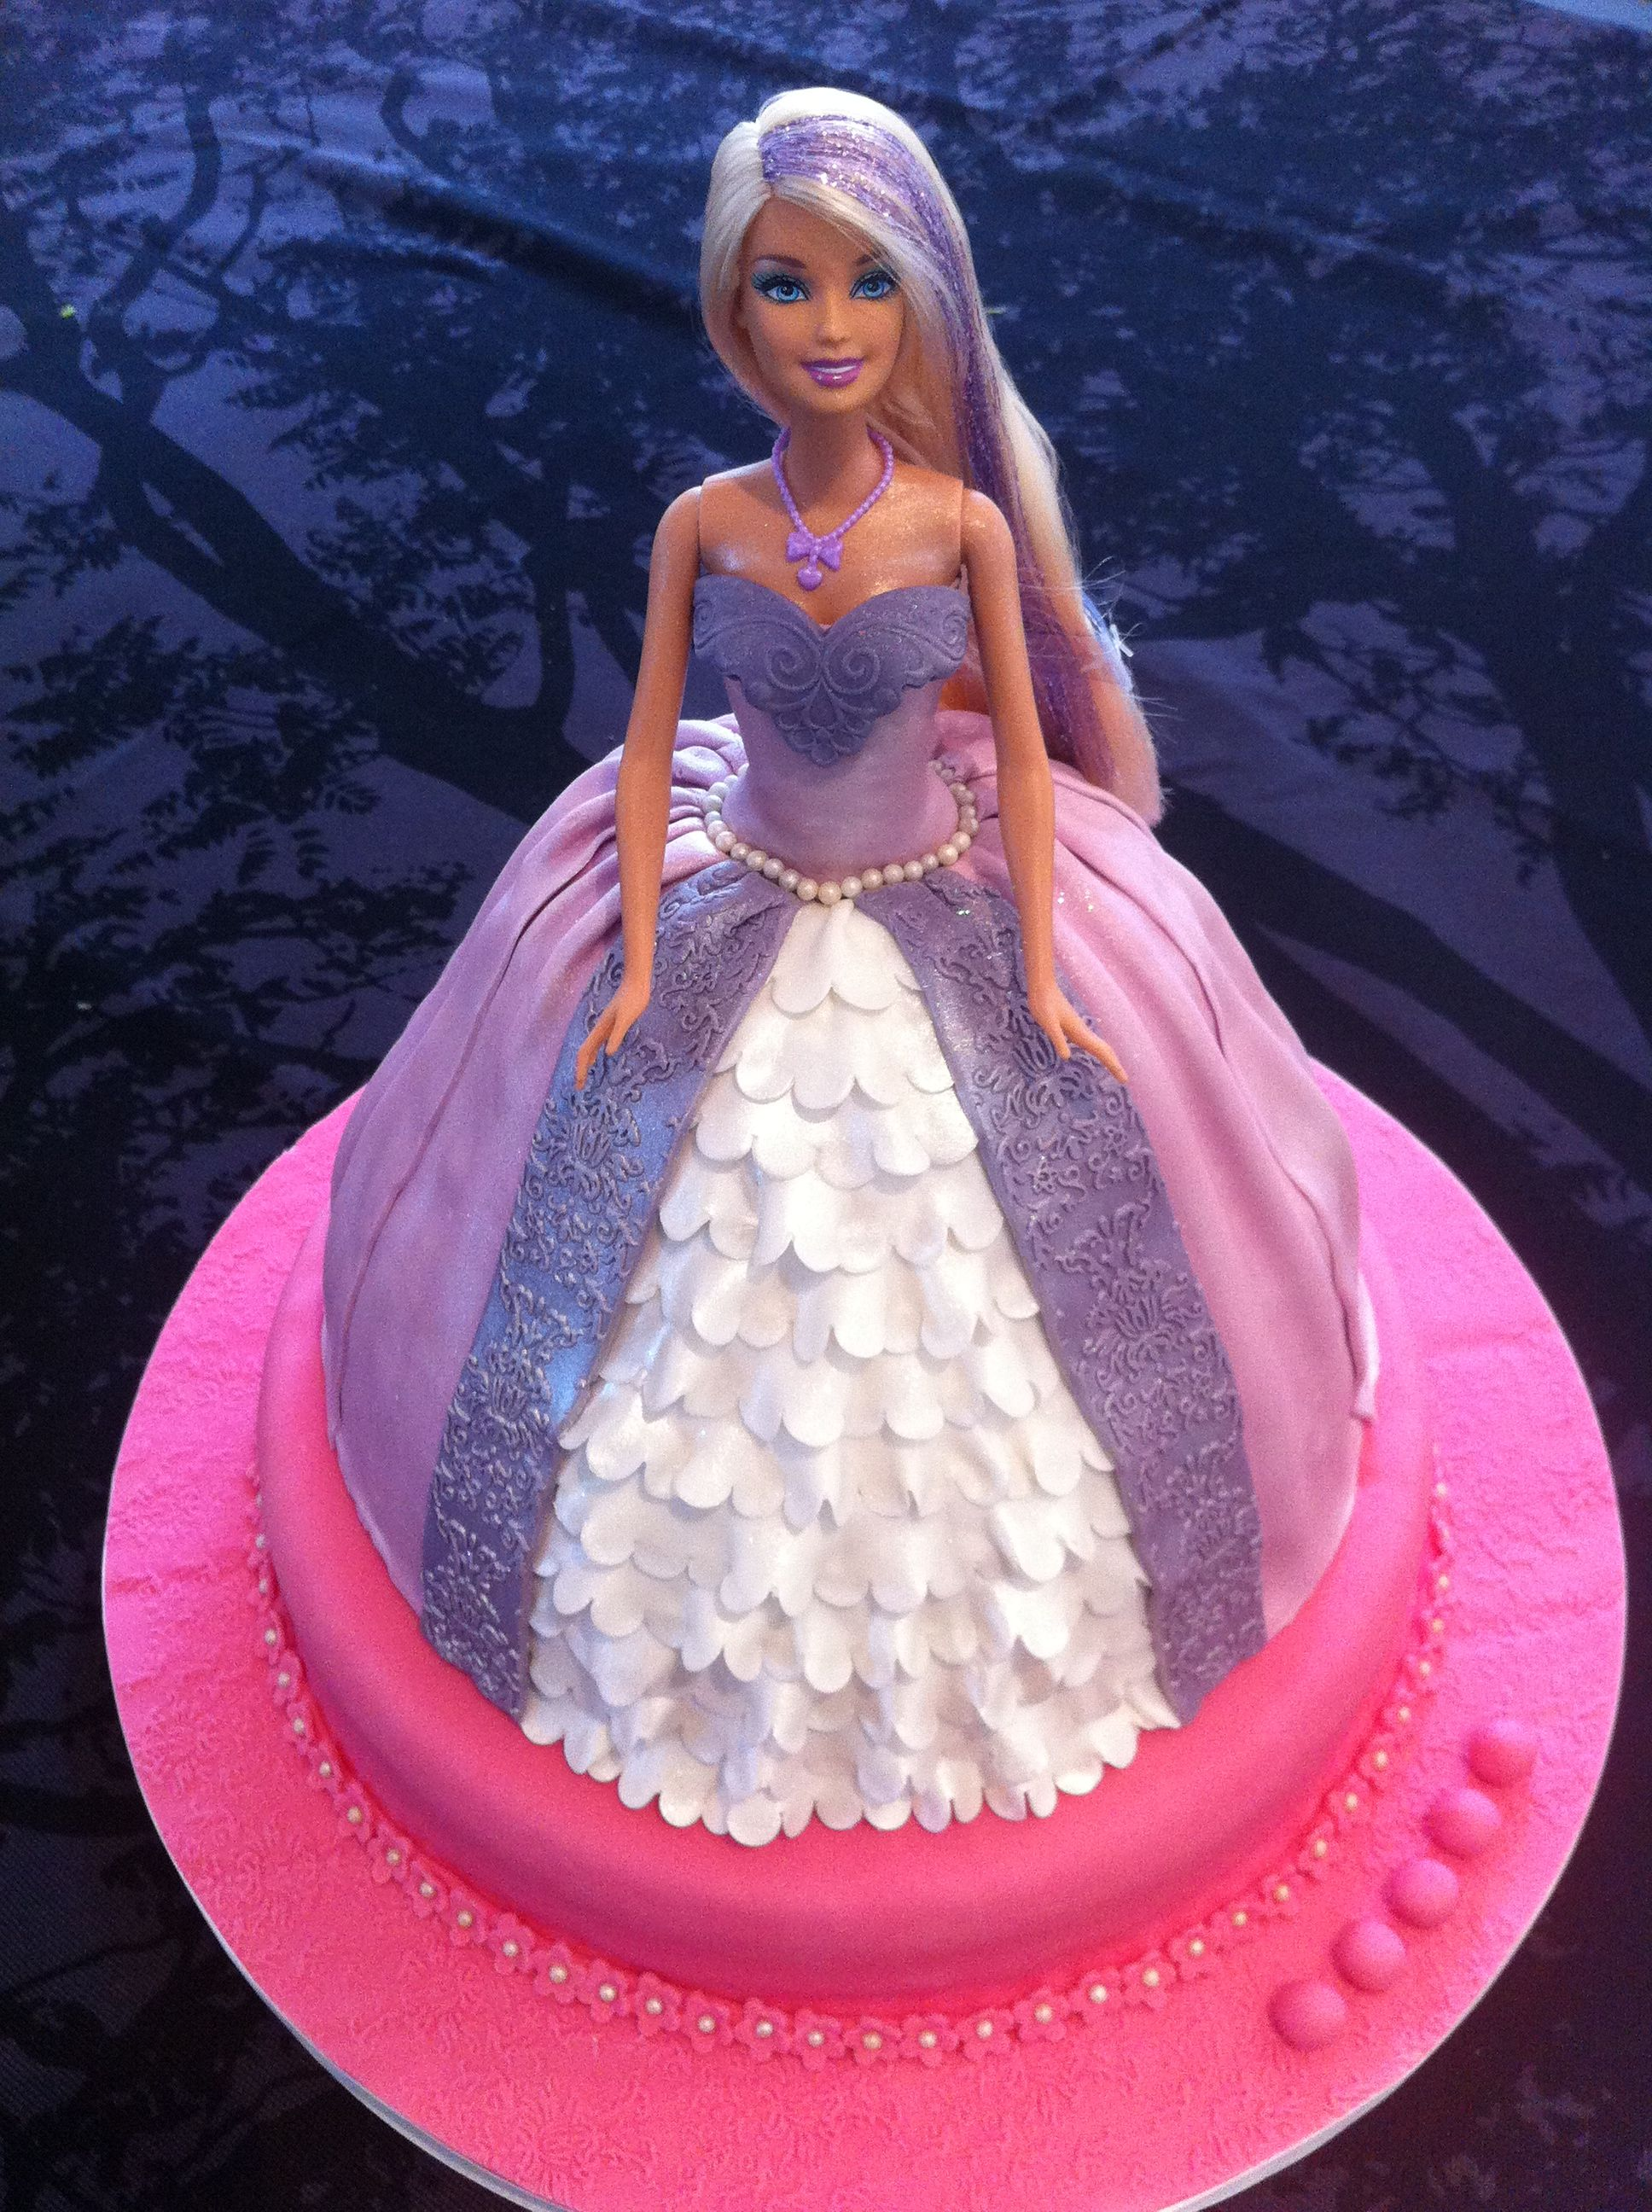 Another barbie cake _ its very popular